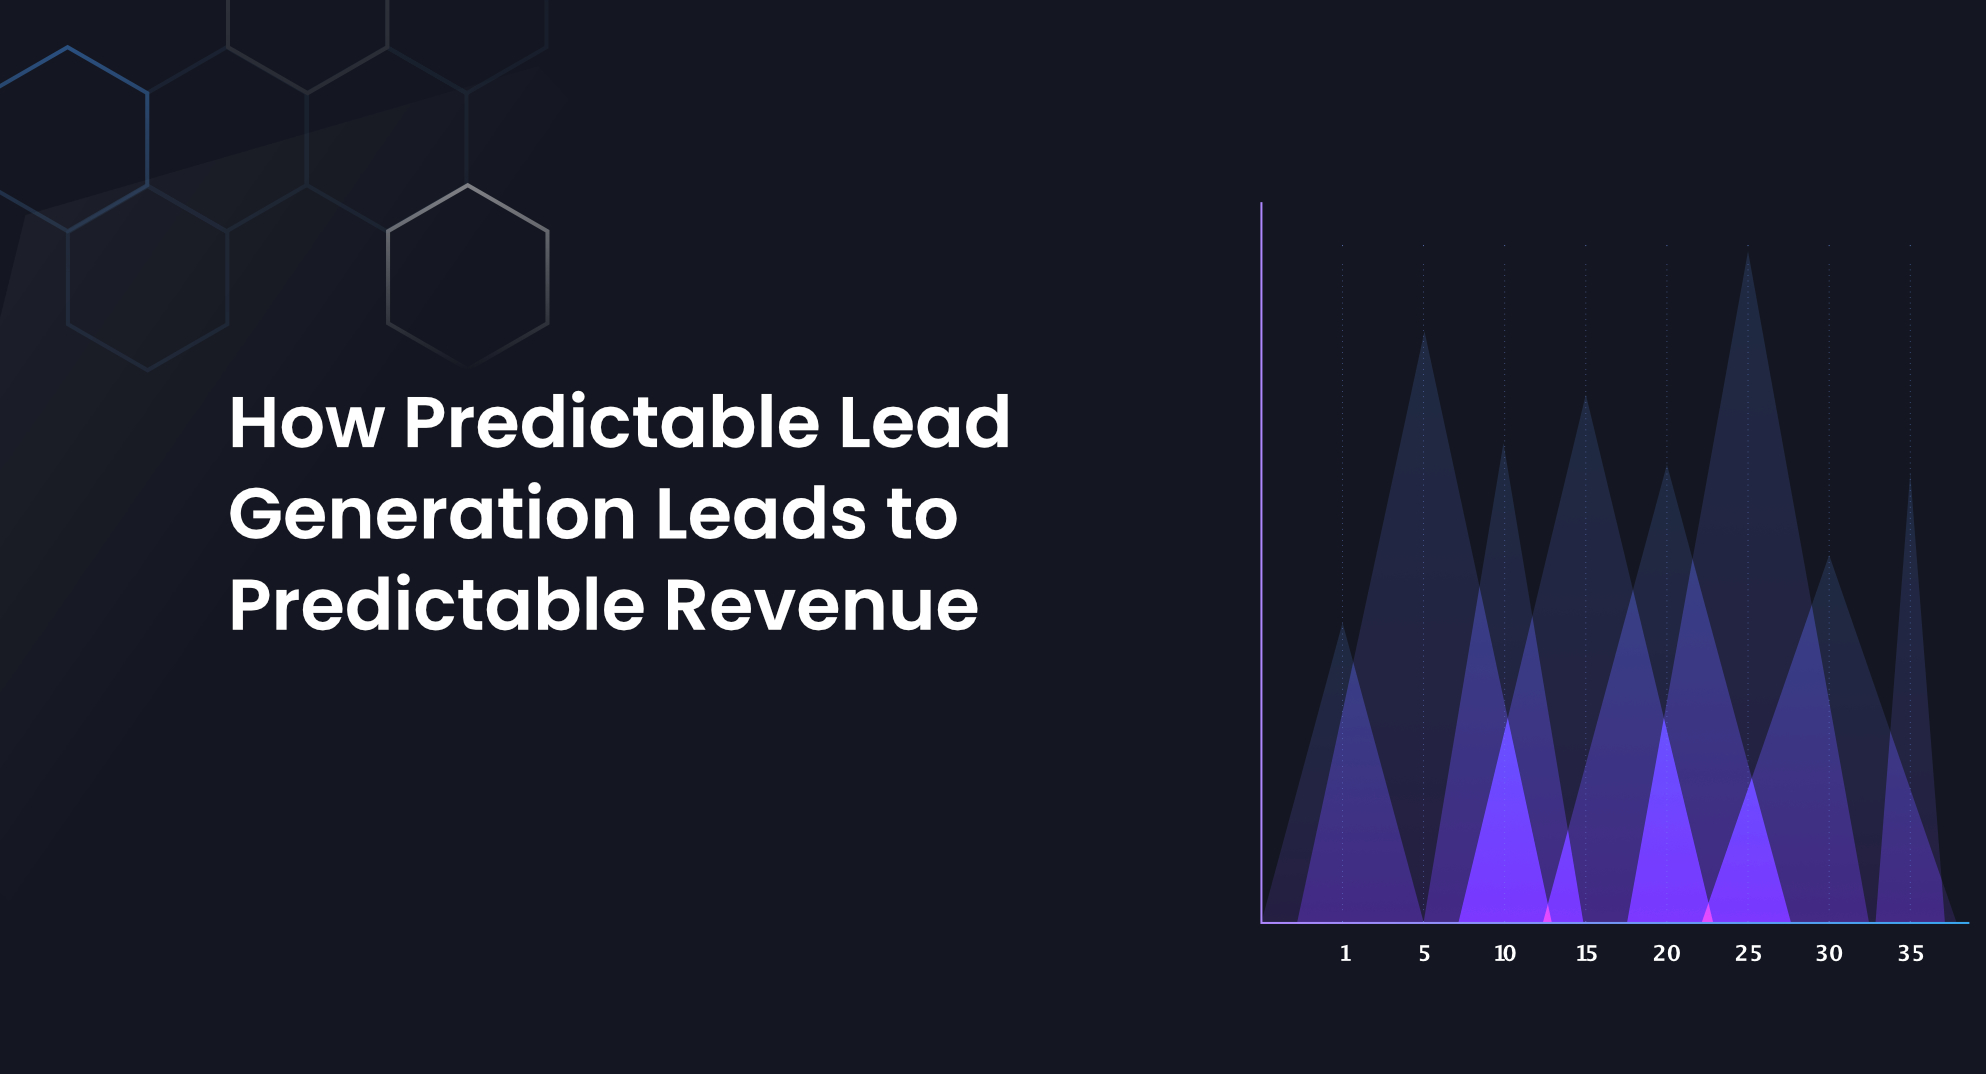 How Predictable Lead Generation Leads to Predictable Revenue